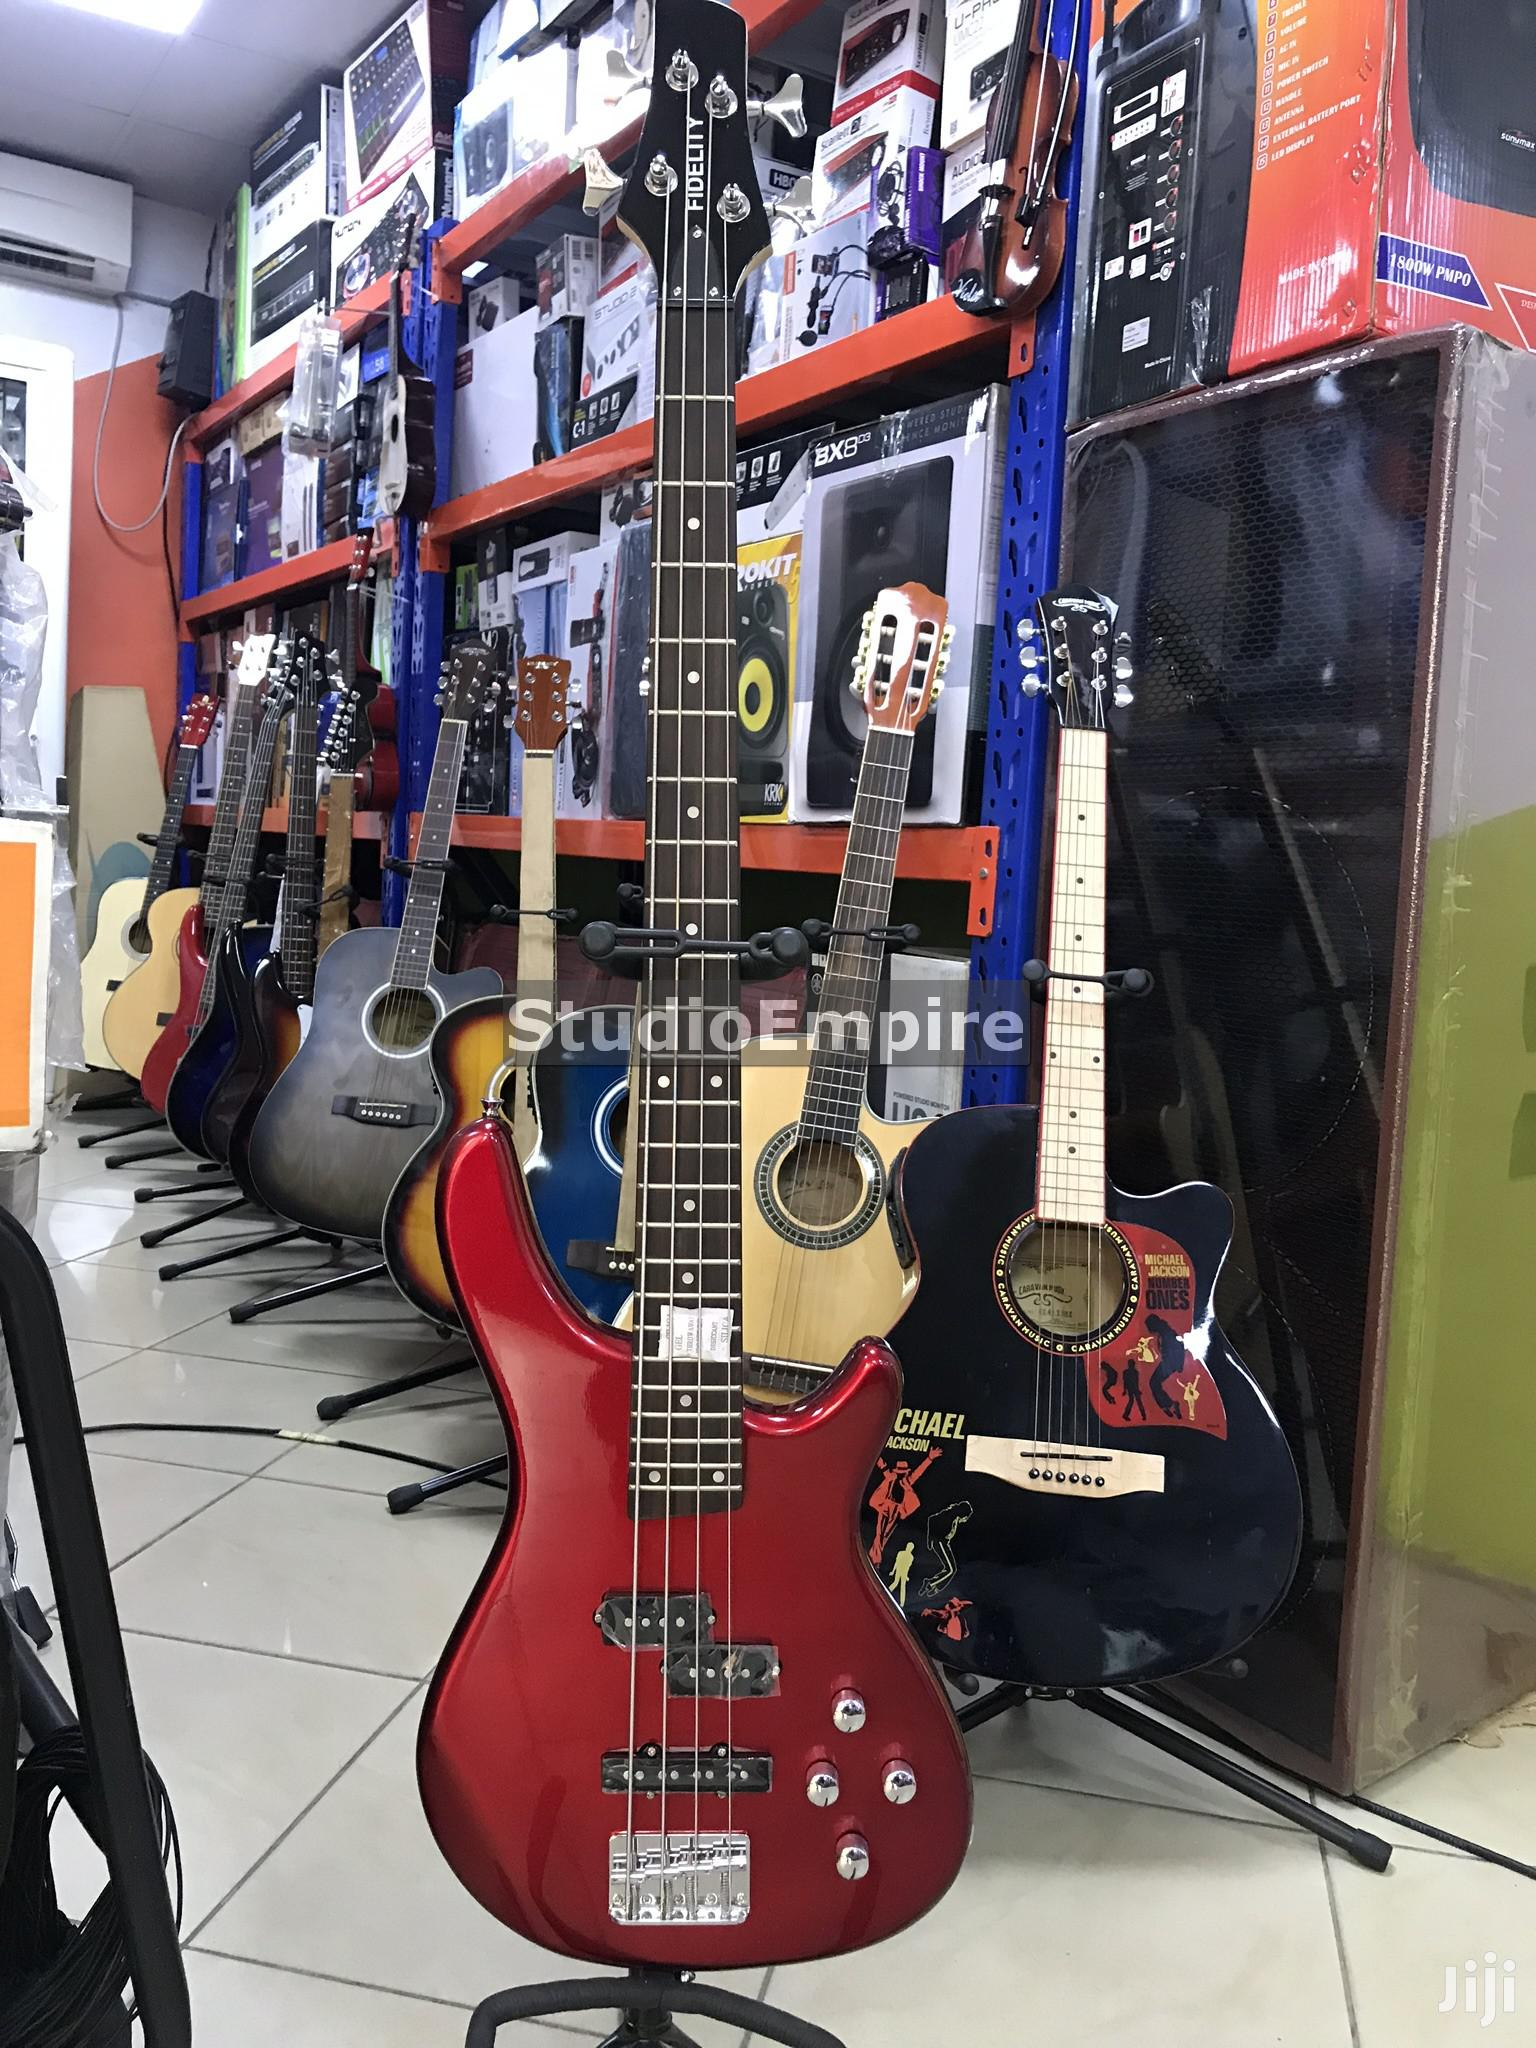 Archive Fidelity Professional 4 String Bass Guitar With 24 Frets Vintage Red In Lagos State Musical Instruments Gear Studio Empire Jiji Ng